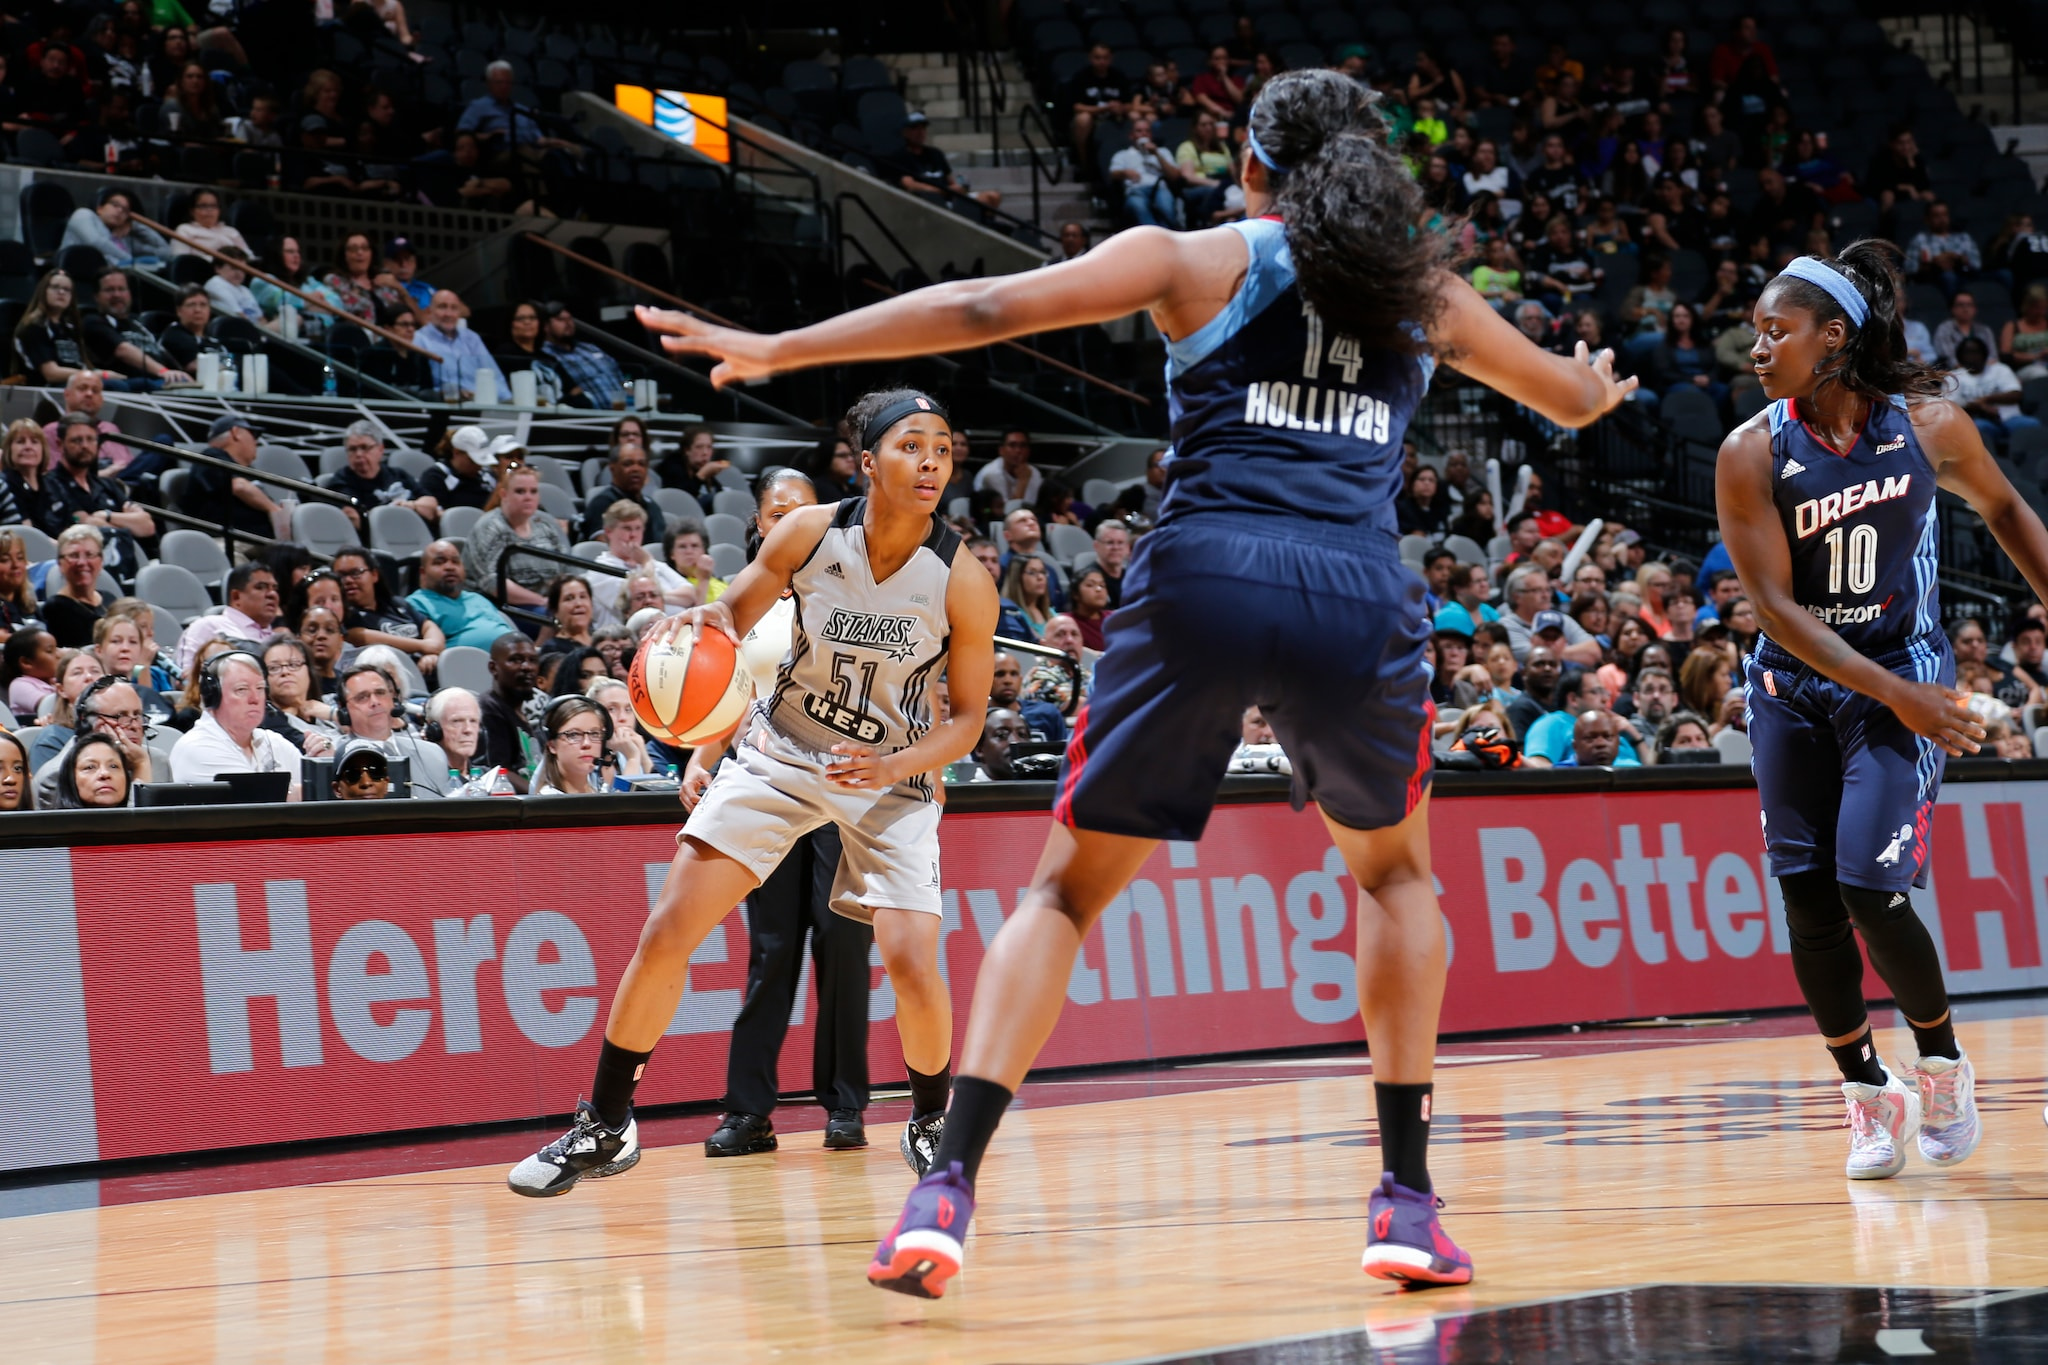 SAN ANTONIO, TX - MAY 14: Sydney Colson #51 of the San Antonio Stars drives to the basket against the Atlanta Dream during the game on May 14, 2016 at AT&T Center in San Antonio, Texas. NOTE TO USER: User expressly acknowledges and agrees that, by downloading and or using this Photograph, user is consenting to the terms and conditions of the Getty Images License Agreement. Mandatory Copyright Notice: Copyright 2016 NBAE (Photo by Chris Covatta/NBAE via Getty Images)